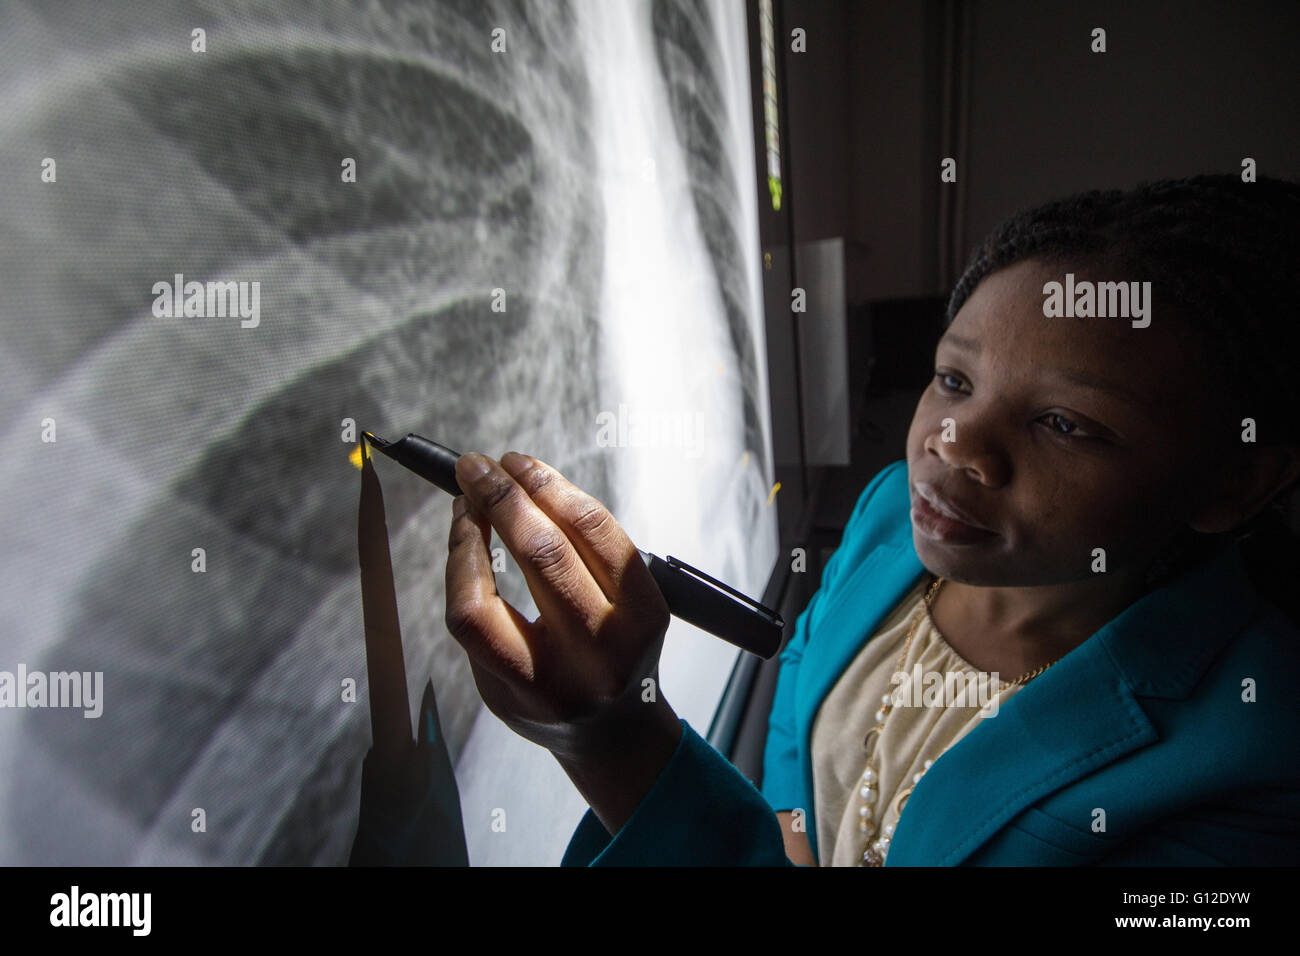 Radiography students using ultrasound and x-rays - Stock Image